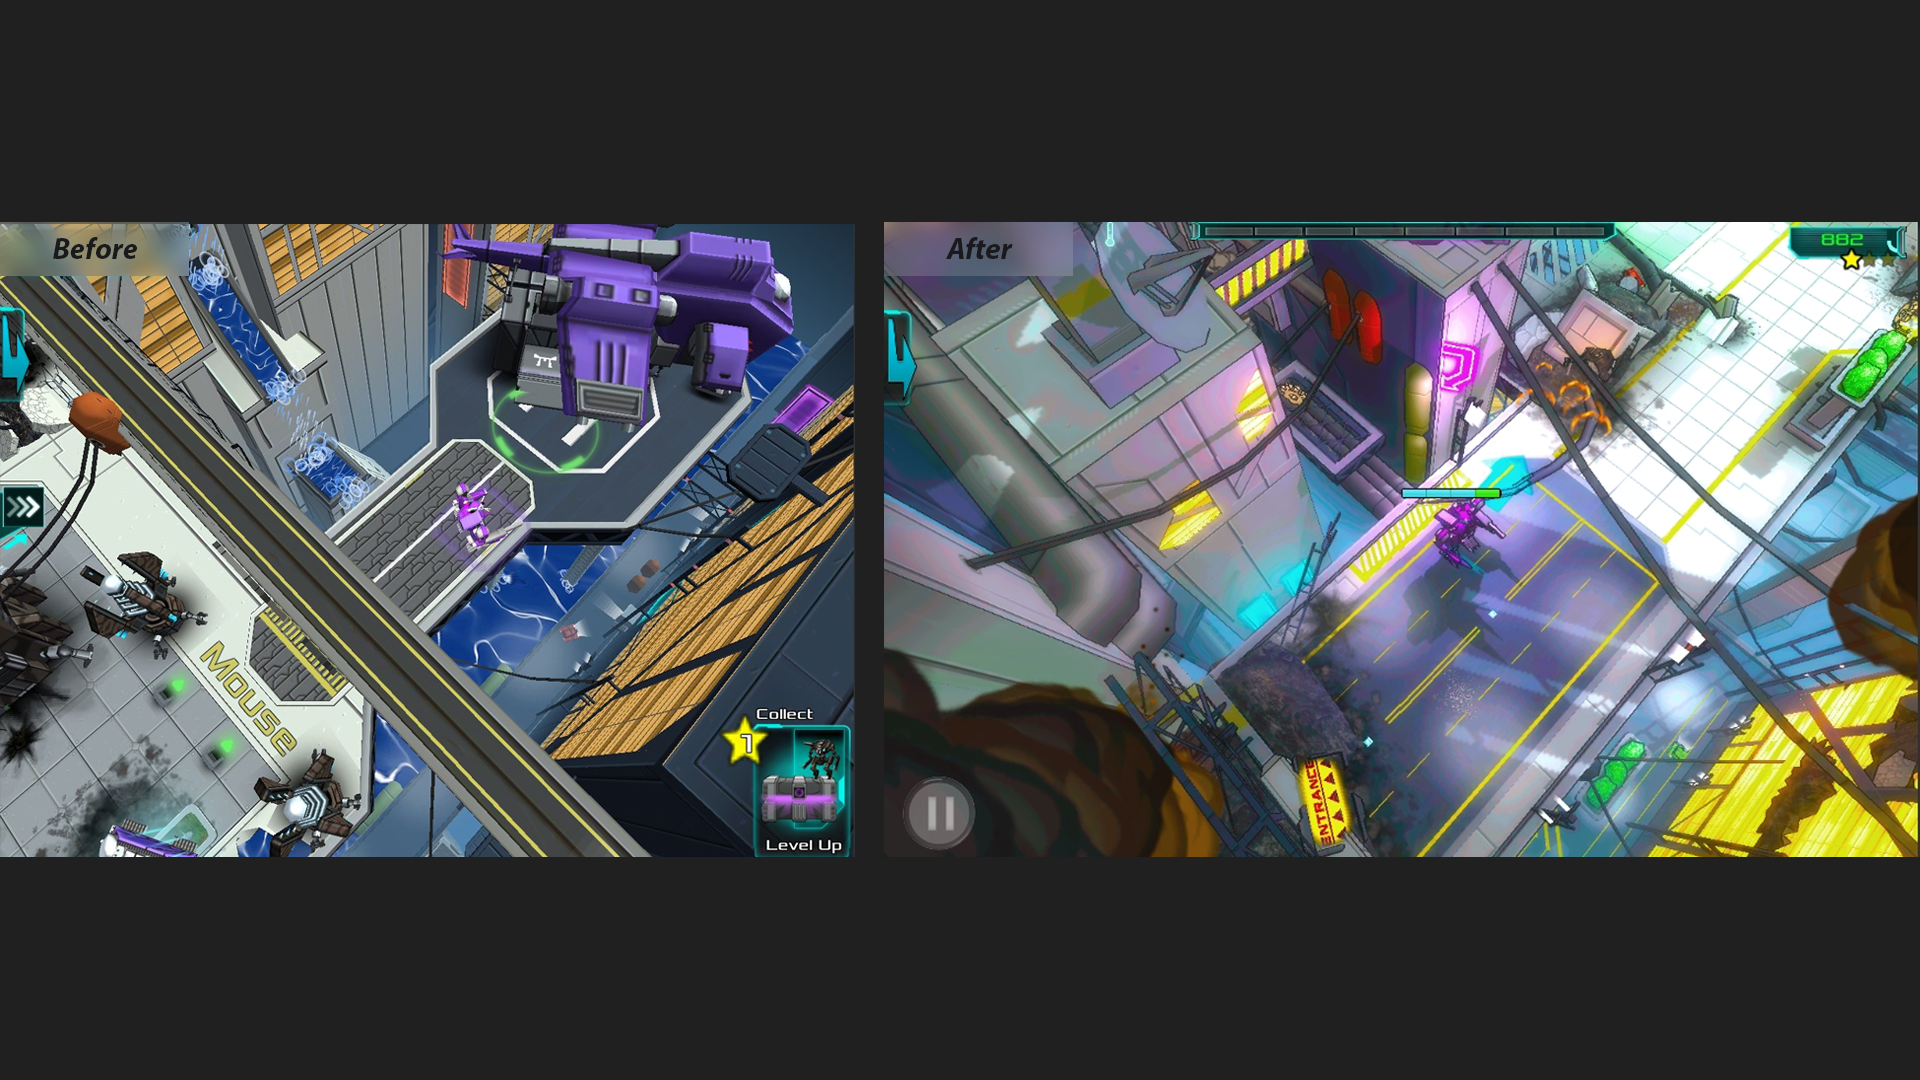 Cats in Mechs graphical upgrade and optimization